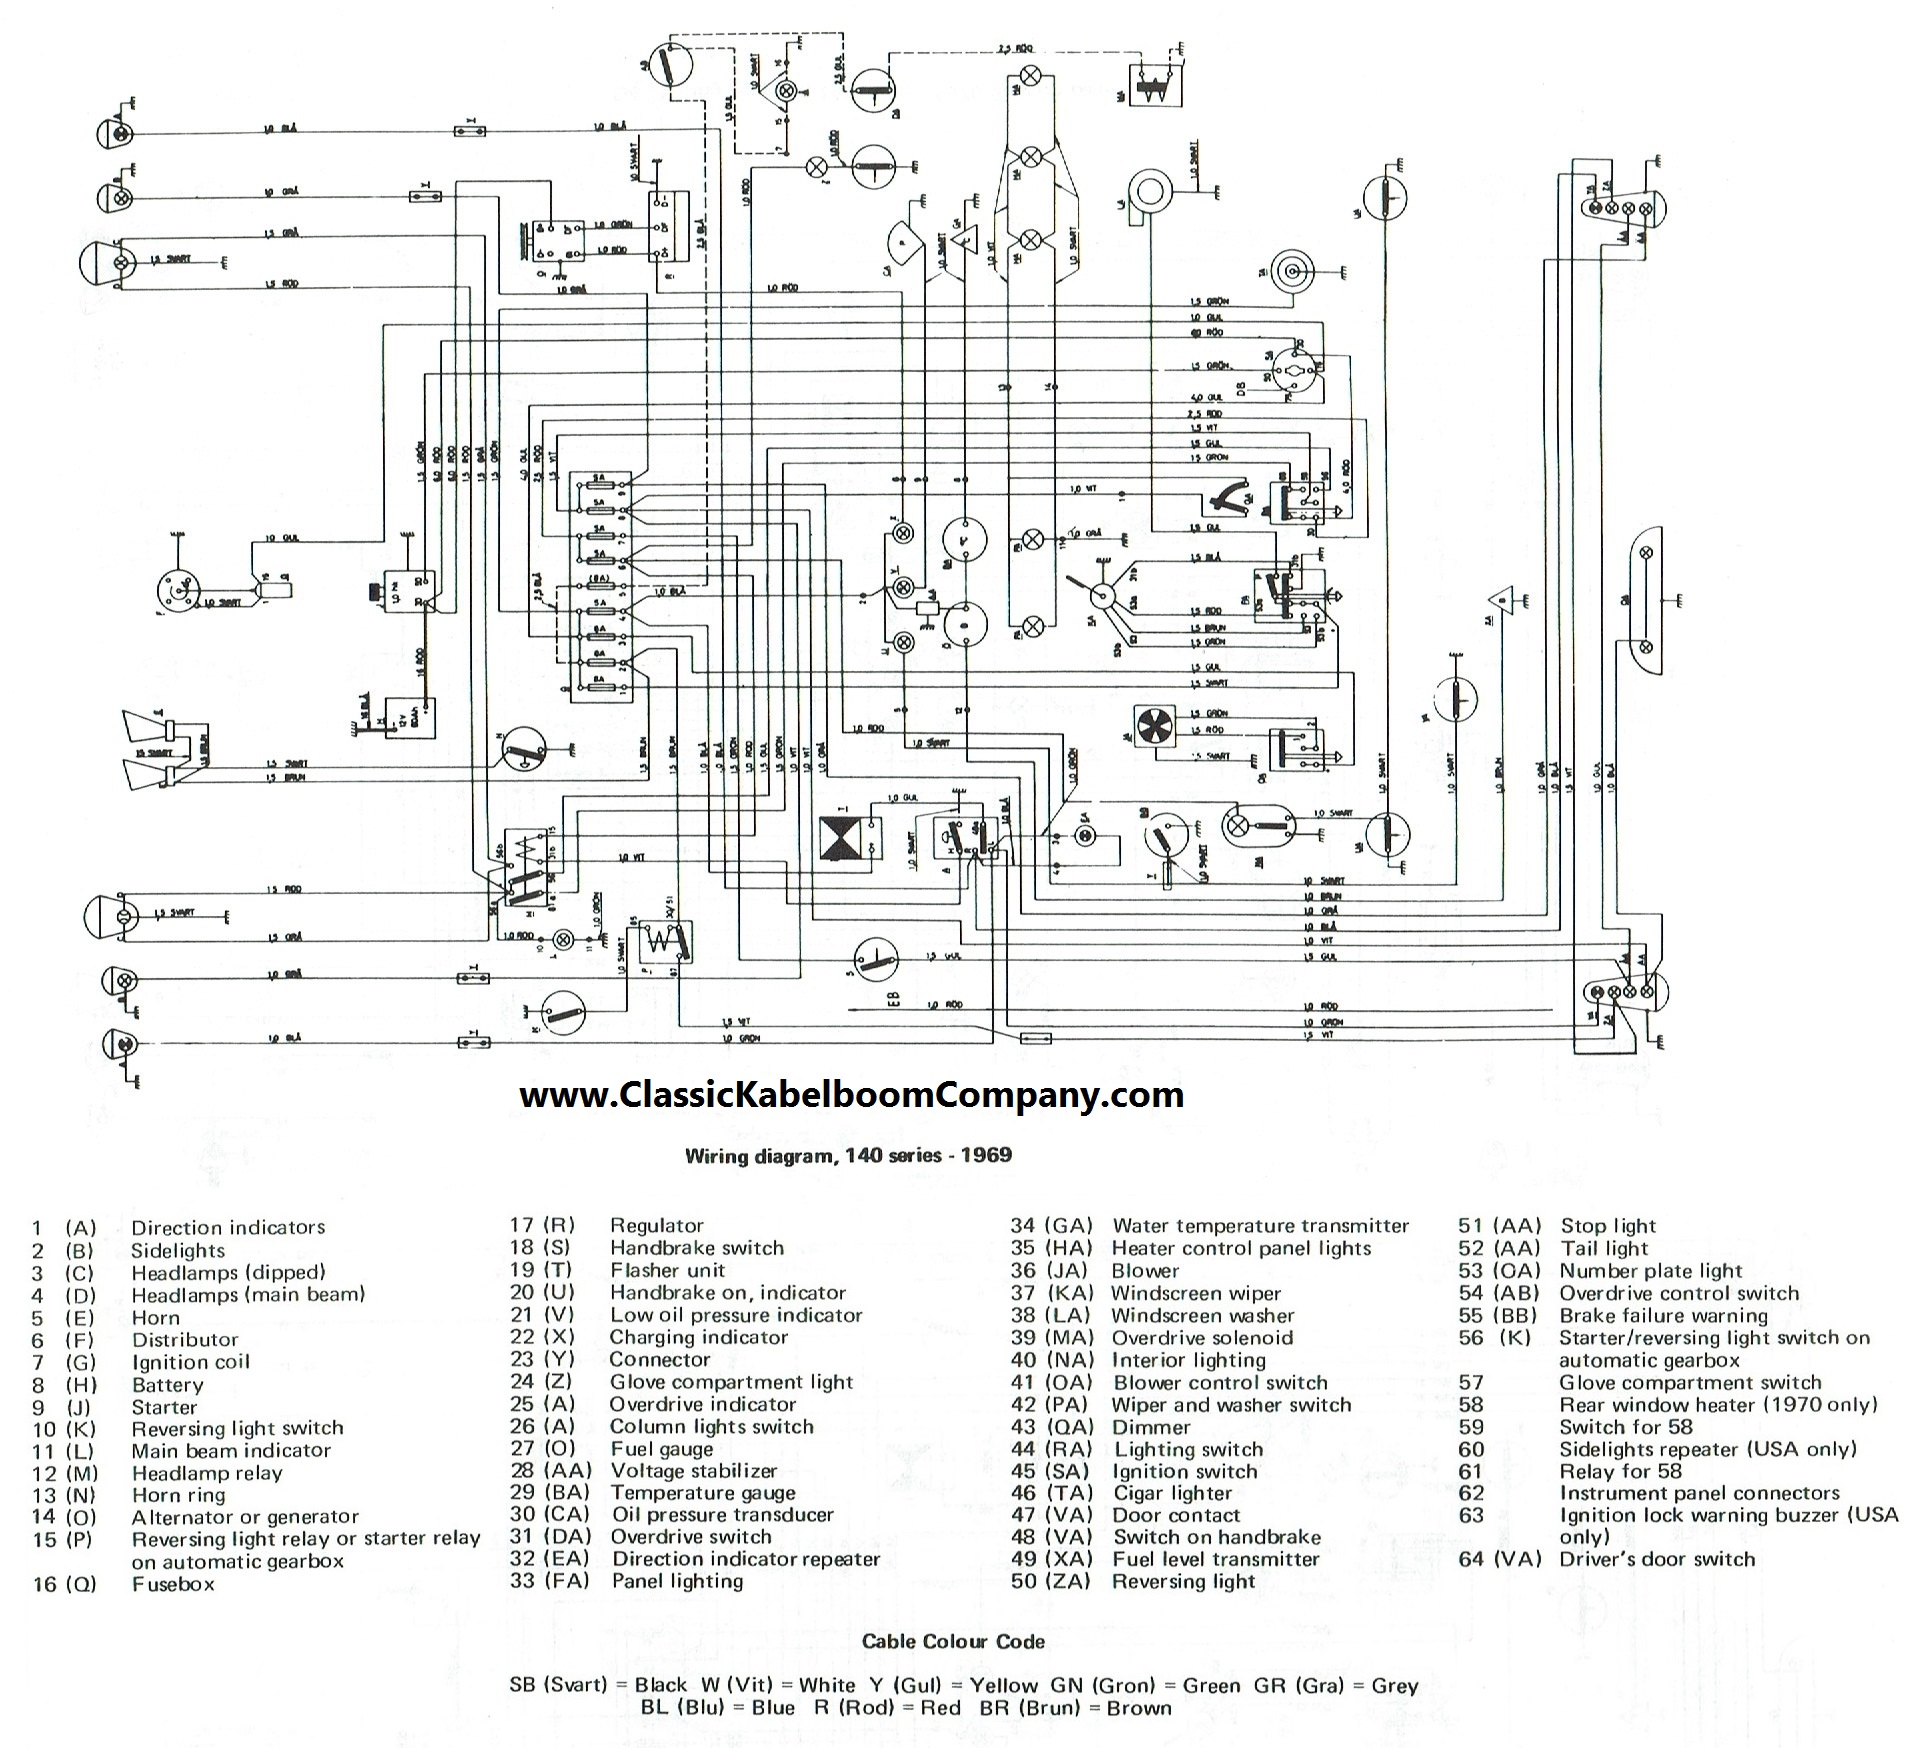 vol17?cdp=a classic kabelboom company elektrisch bedrading schema volvo level transmitter wiring diagram at nearapp.co